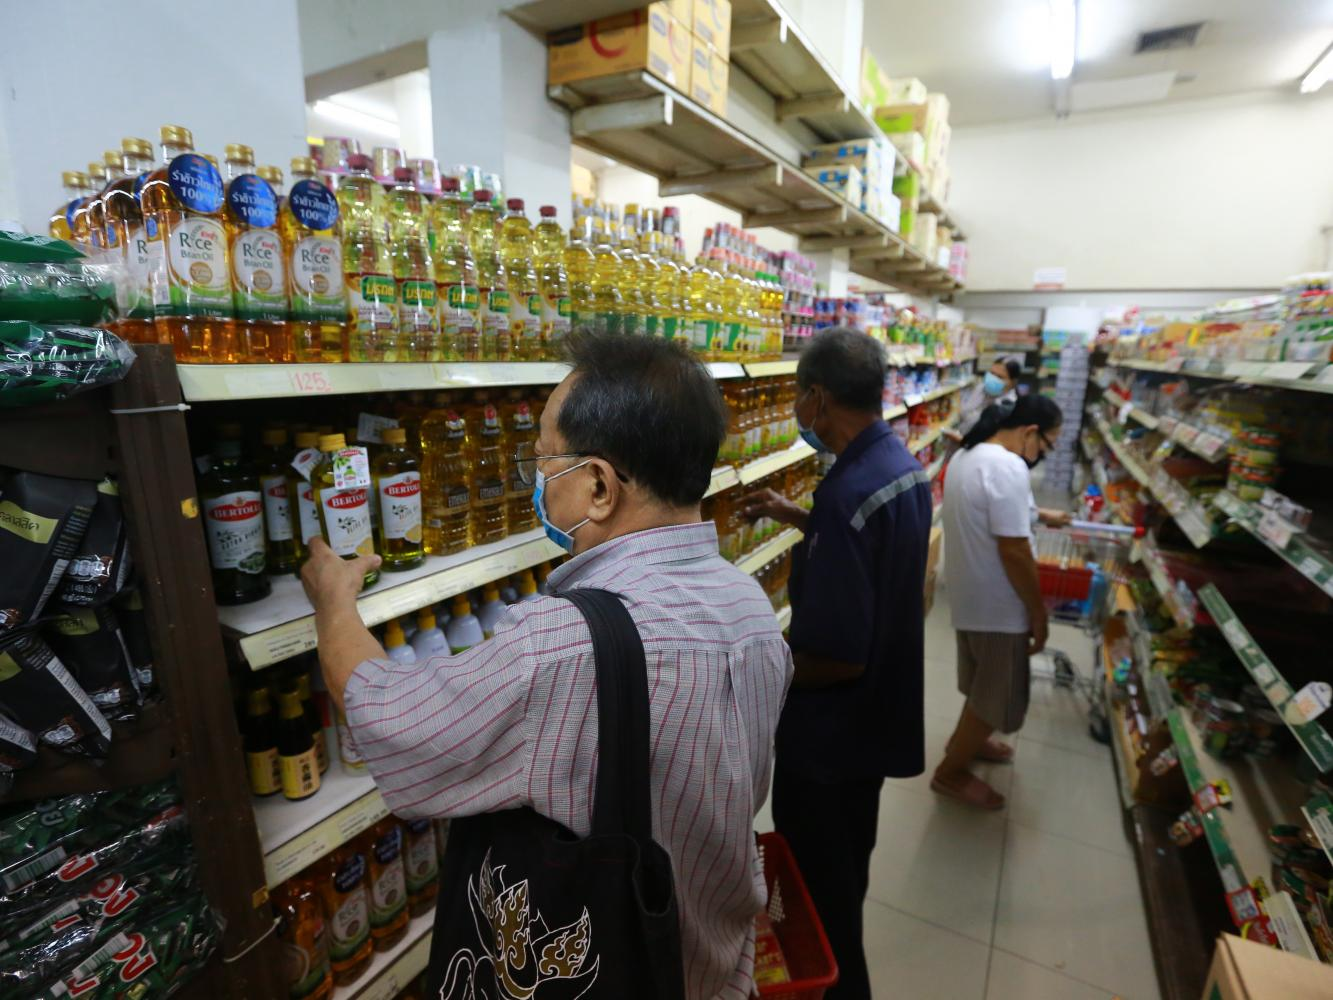 Customers browse vegetable oil products at a store taking part in the 'We Win' scheme in Samut Prakan.Somchai Poomlard